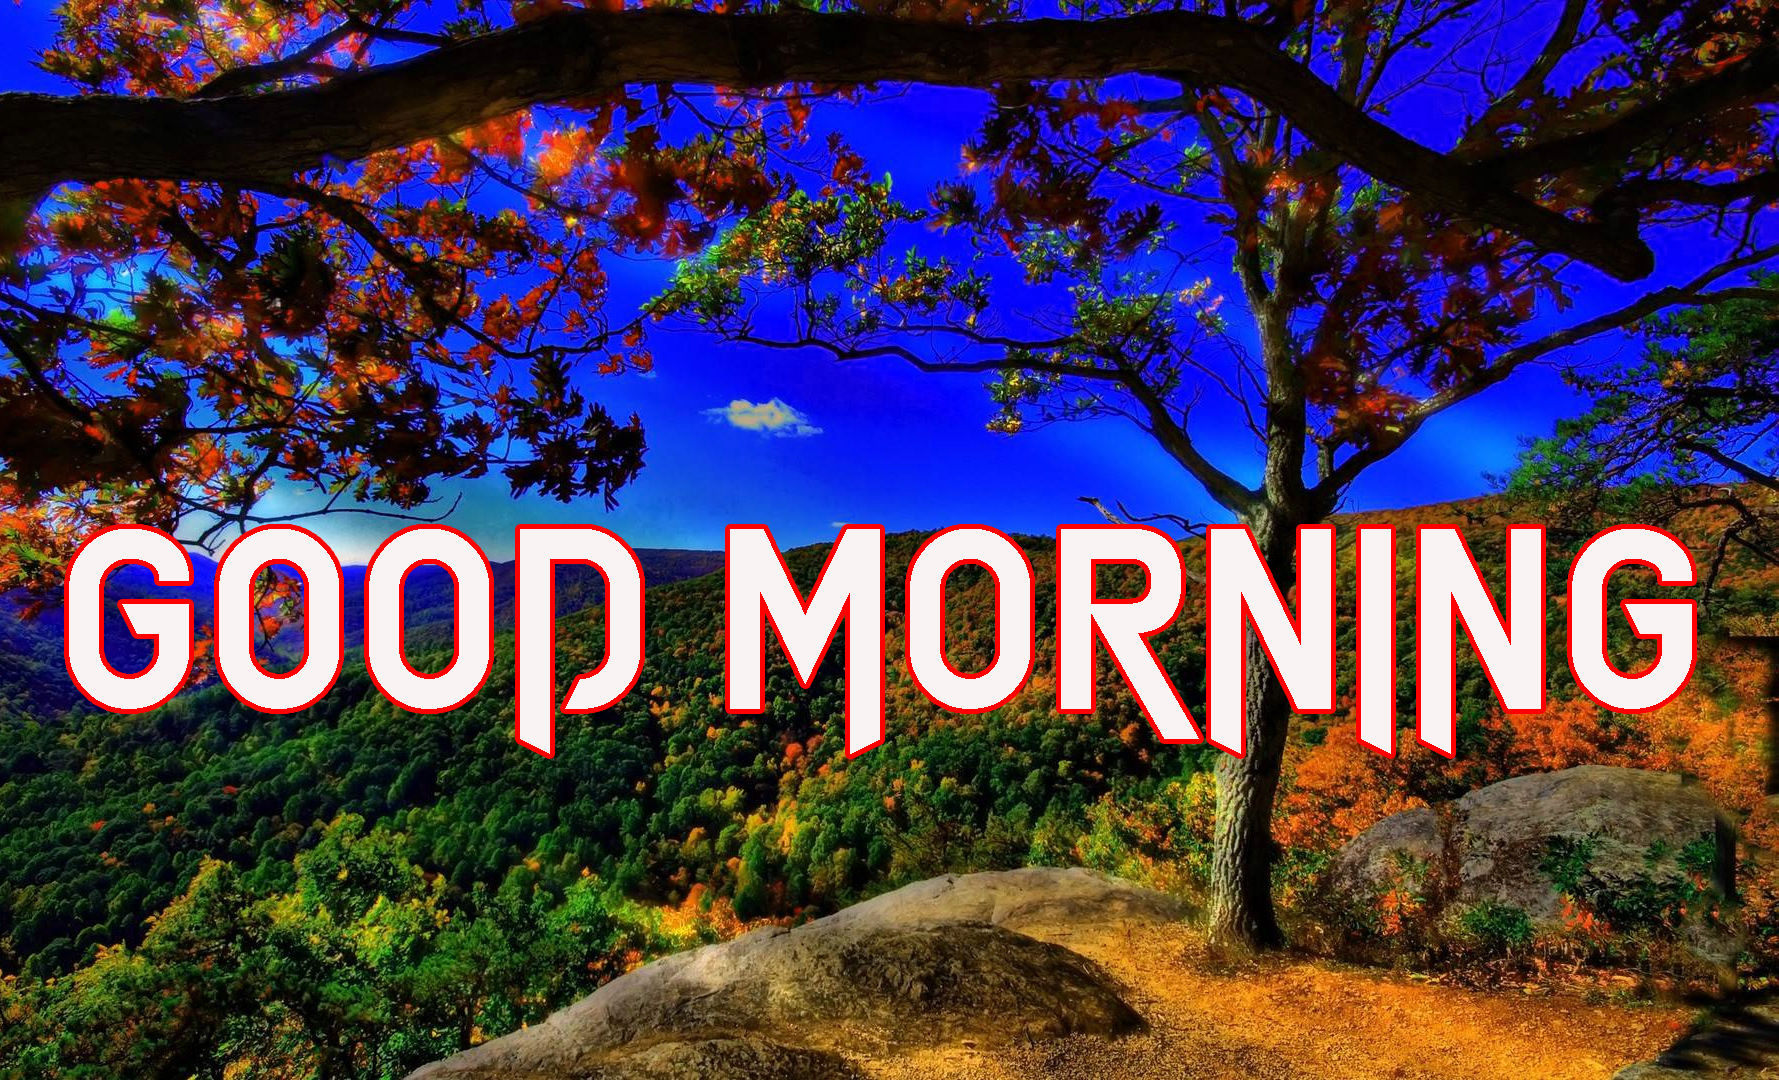 GOOD MORNING IMAGES WALLPAPER PICTURES FREE HD DOWNLOAD